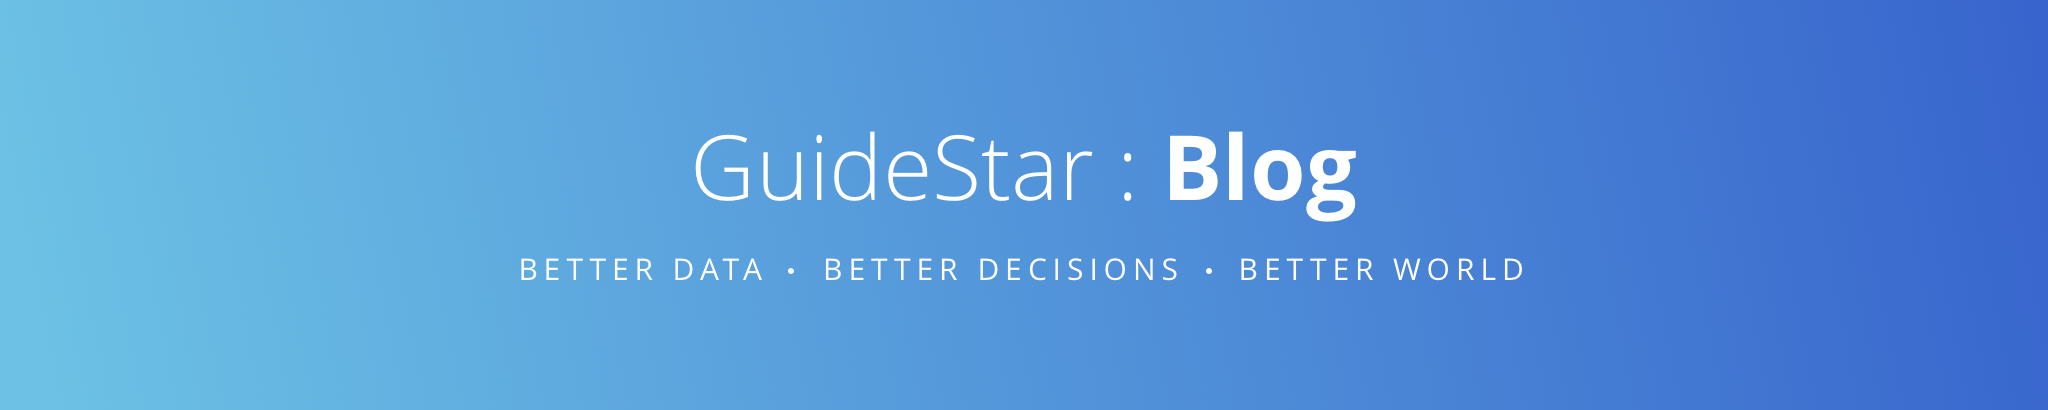 guidestarblog_header.png